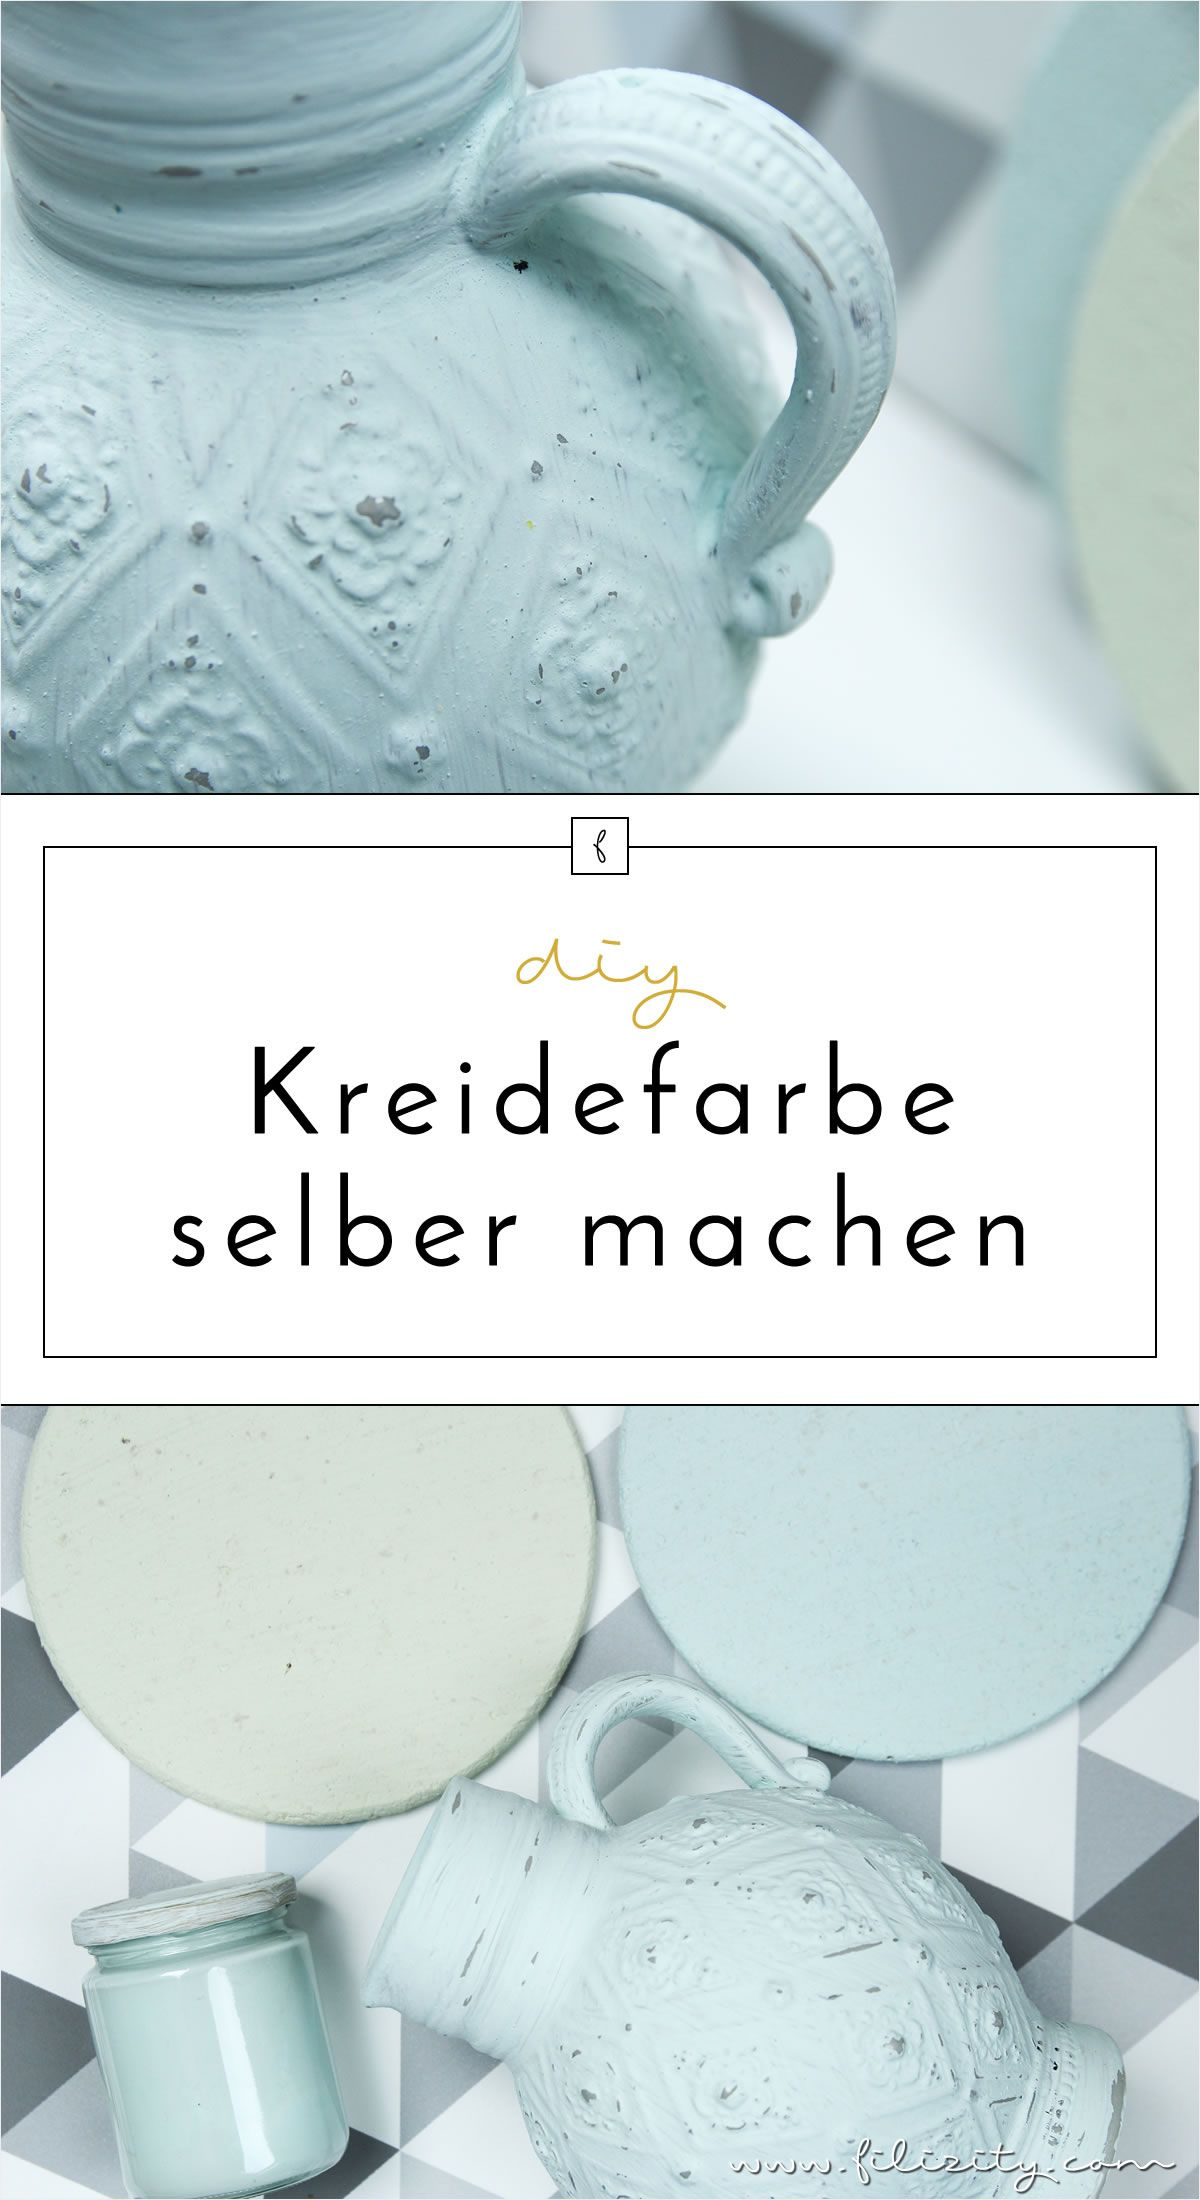 Kreidefarbe selber machen  Rezept, DIY Anleitung & Infos is part of Shabby chic diy, Shabby chic dresser, Shabby chic decor, Shabby chic room, Shabby chic style, Shabby chic furniture -  Vintage Look  Einfaches Rezept, DIYAnleitung & Infos